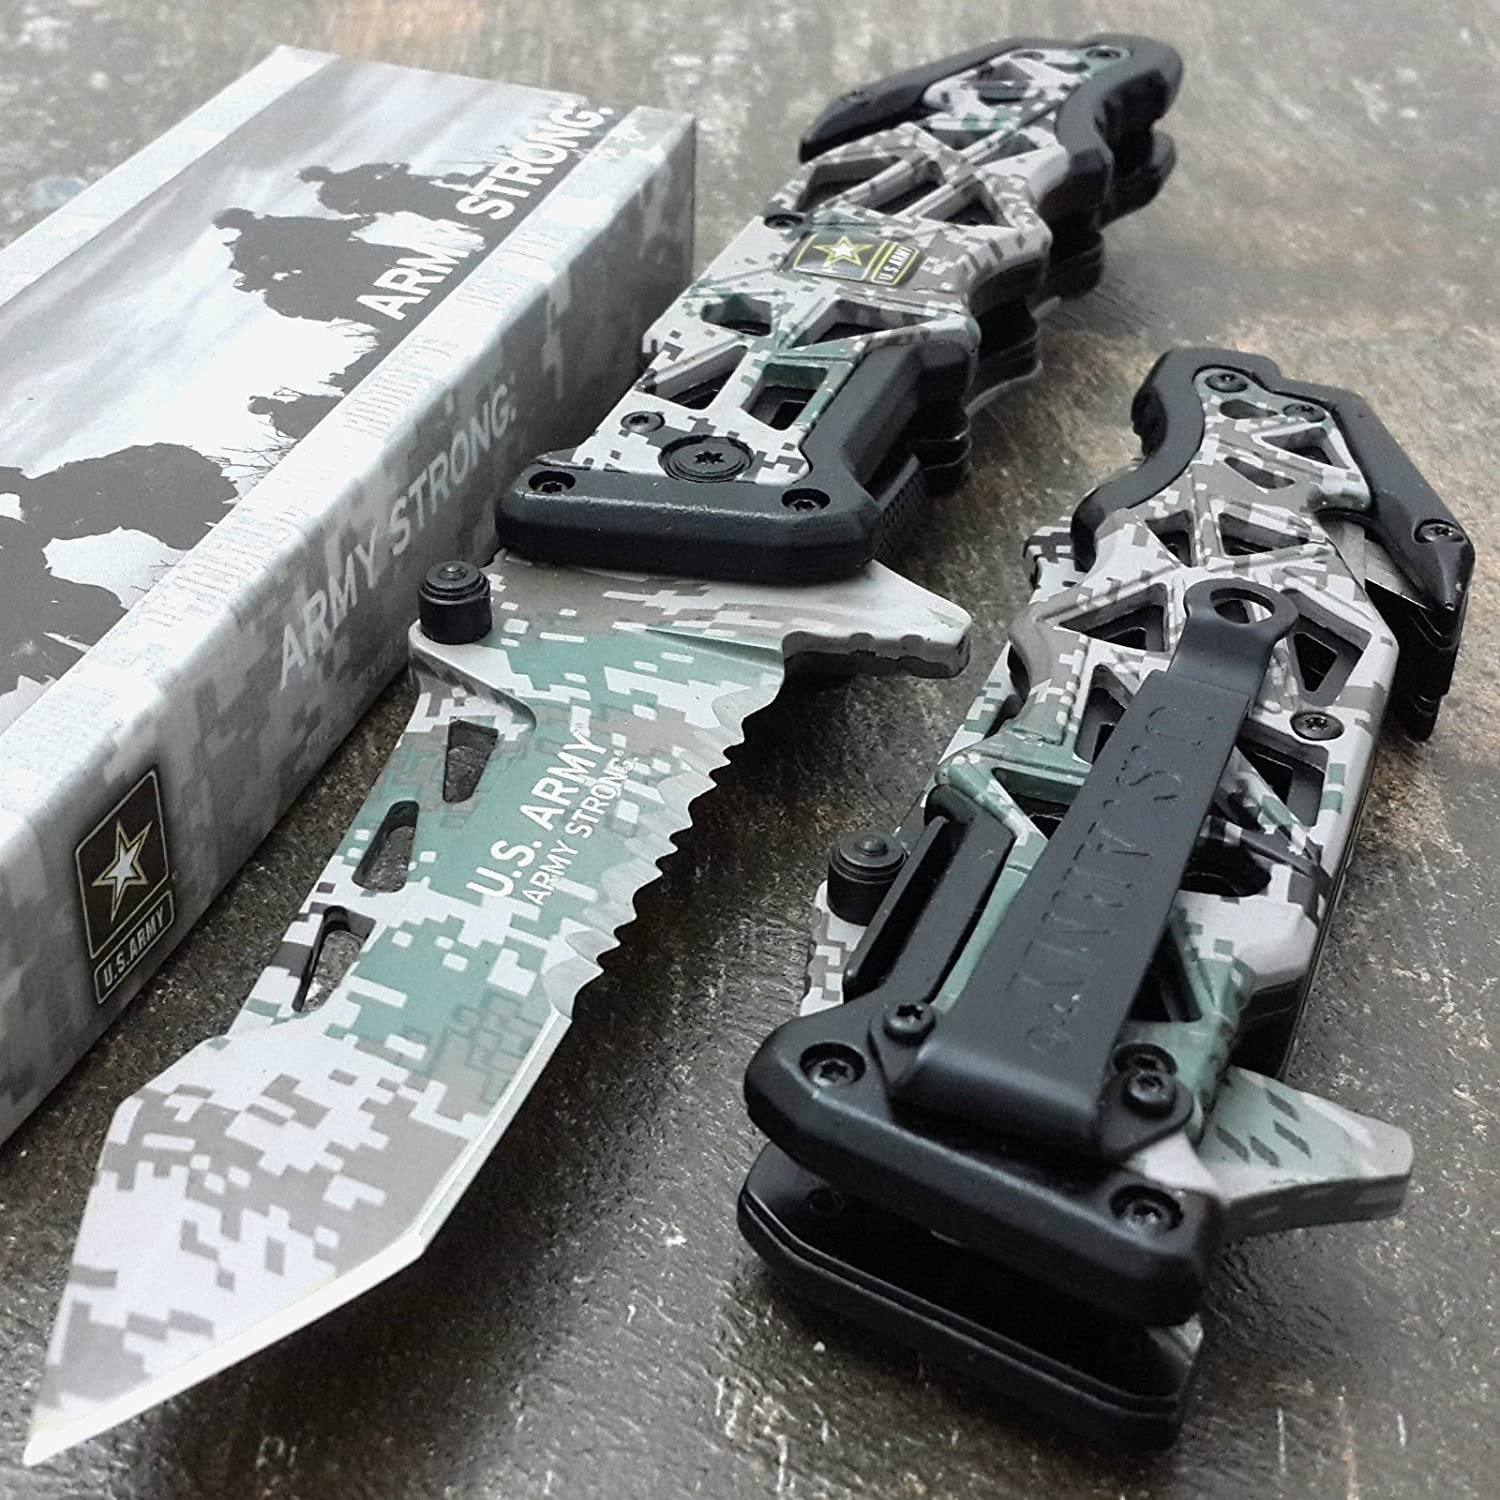 U.S. ARMY KNIVES US ARMY Assisted Knives Officially Licensed GRE